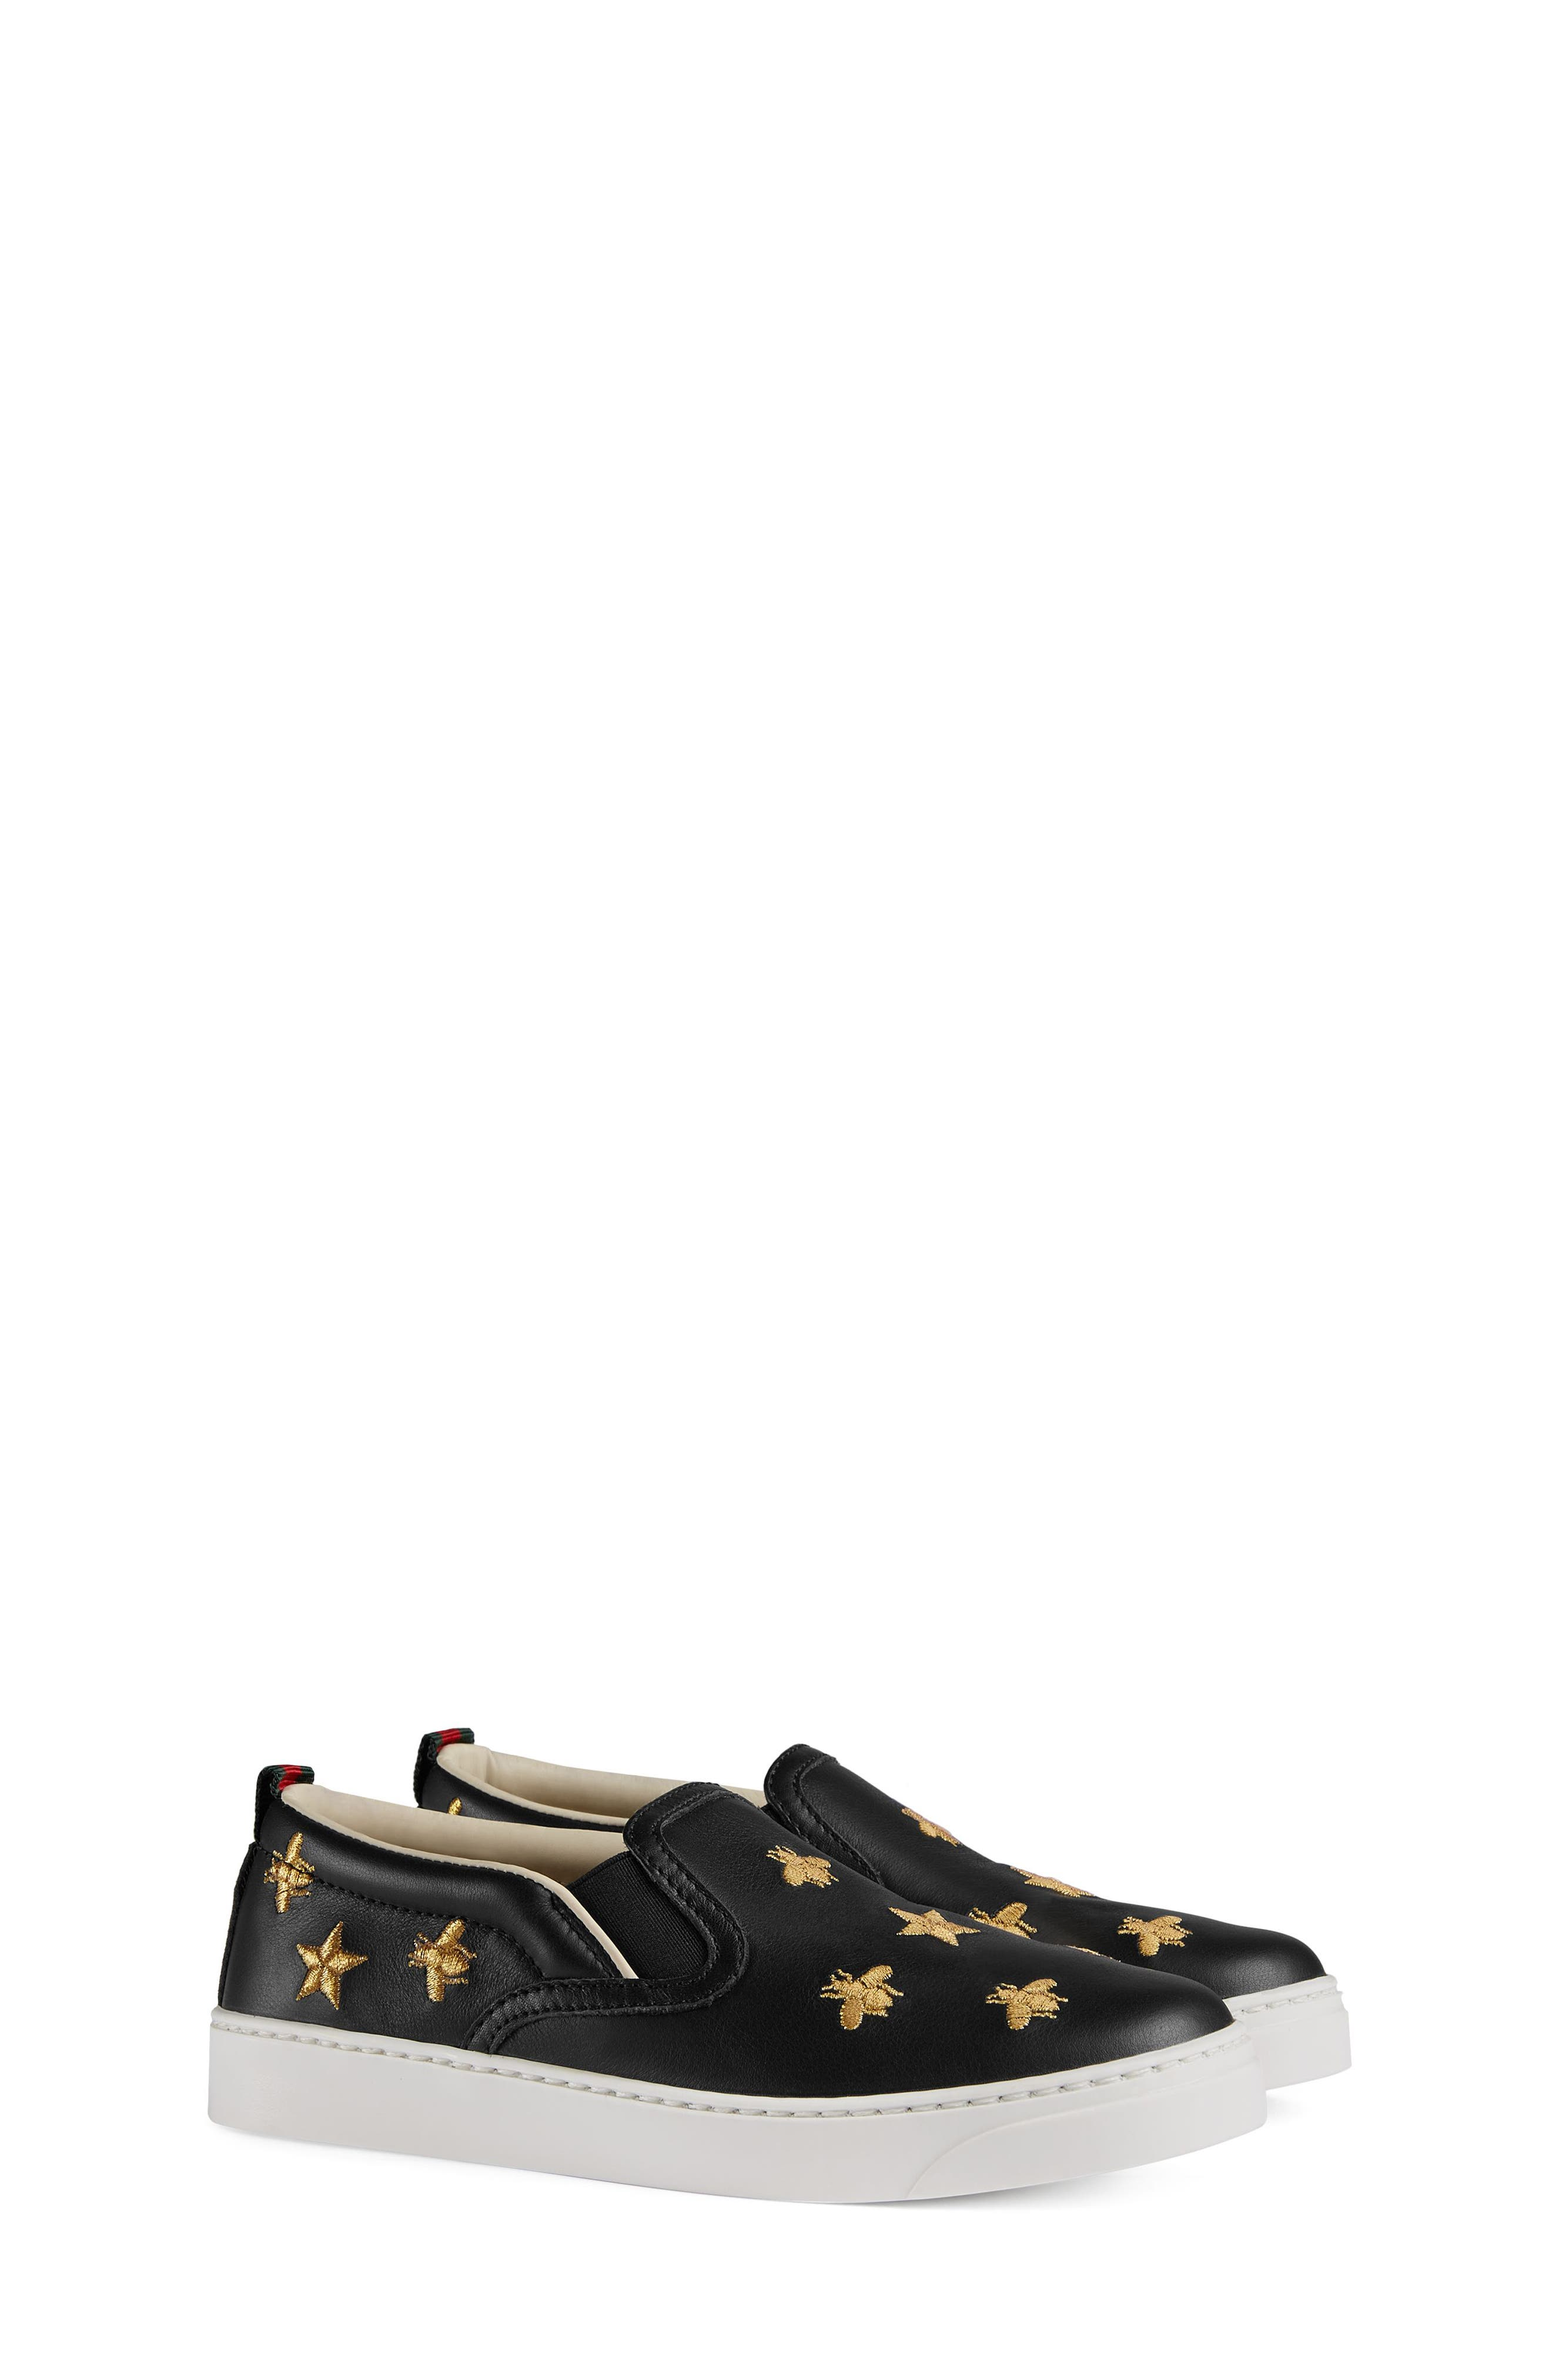 Dublin Bees and Stars Slip-On Sneaker,                         Main,                         color, BLACK/GOLD STARS